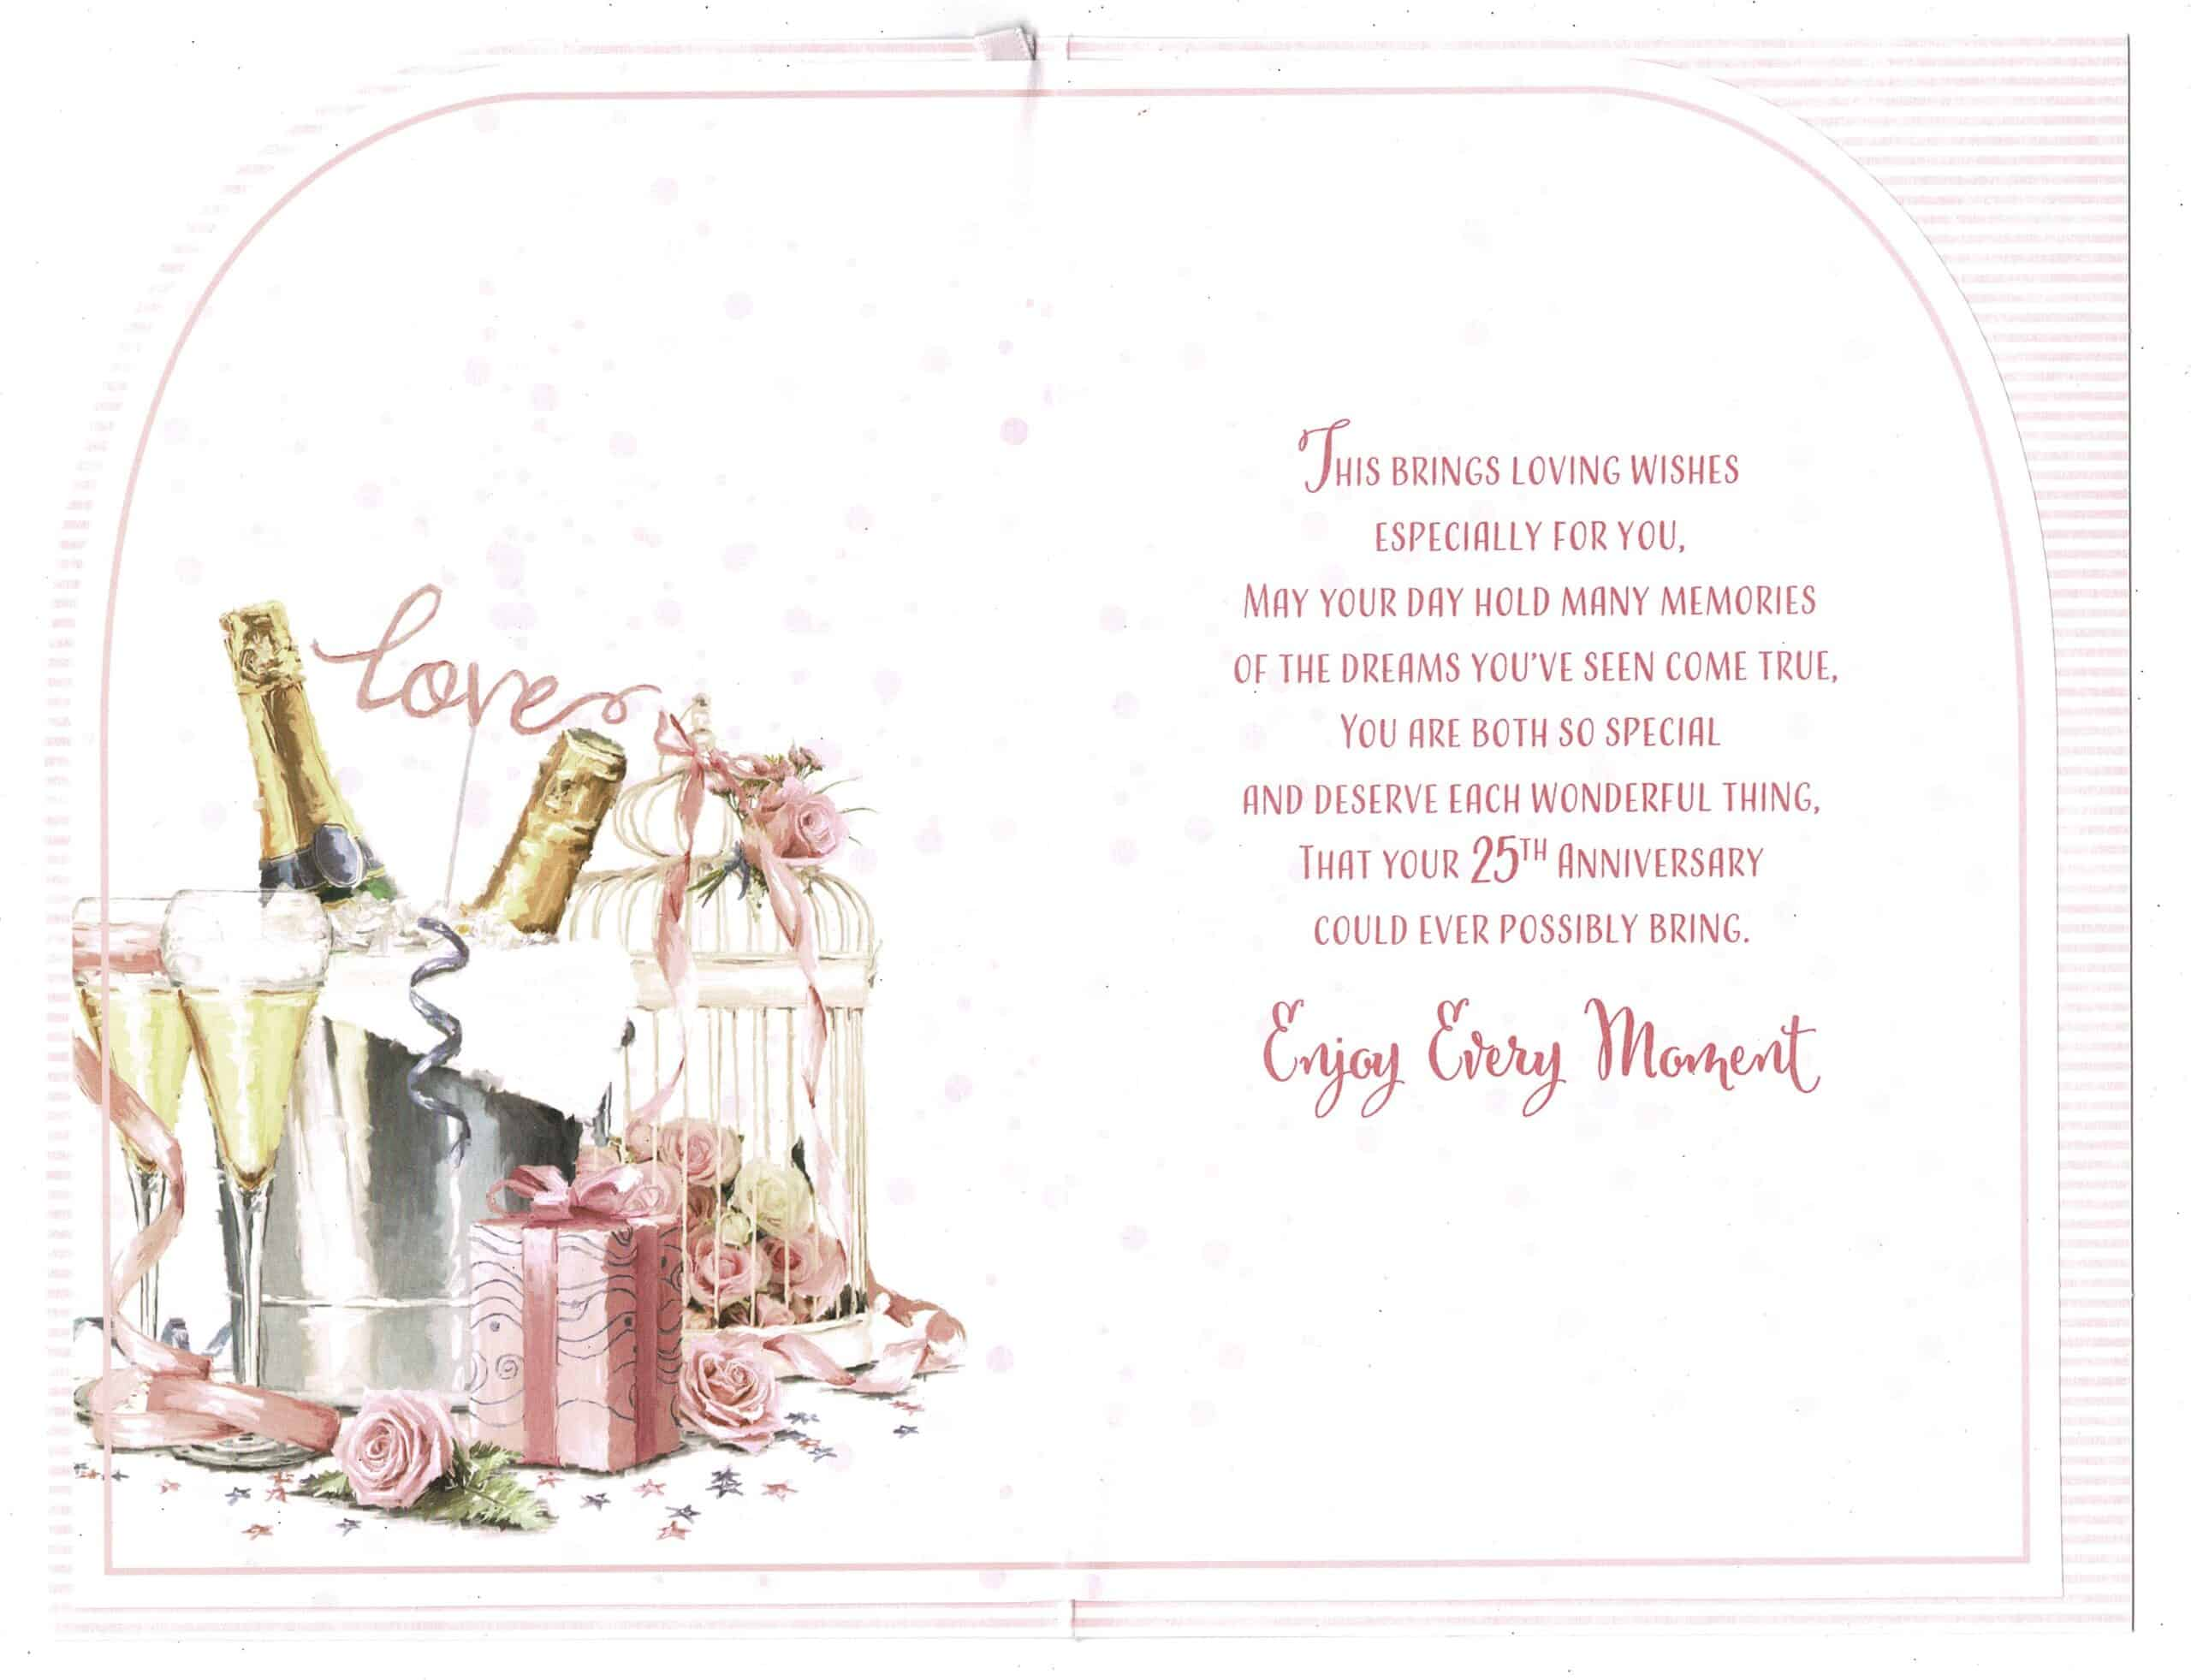 daughter and son in law silver wedding anniversary card